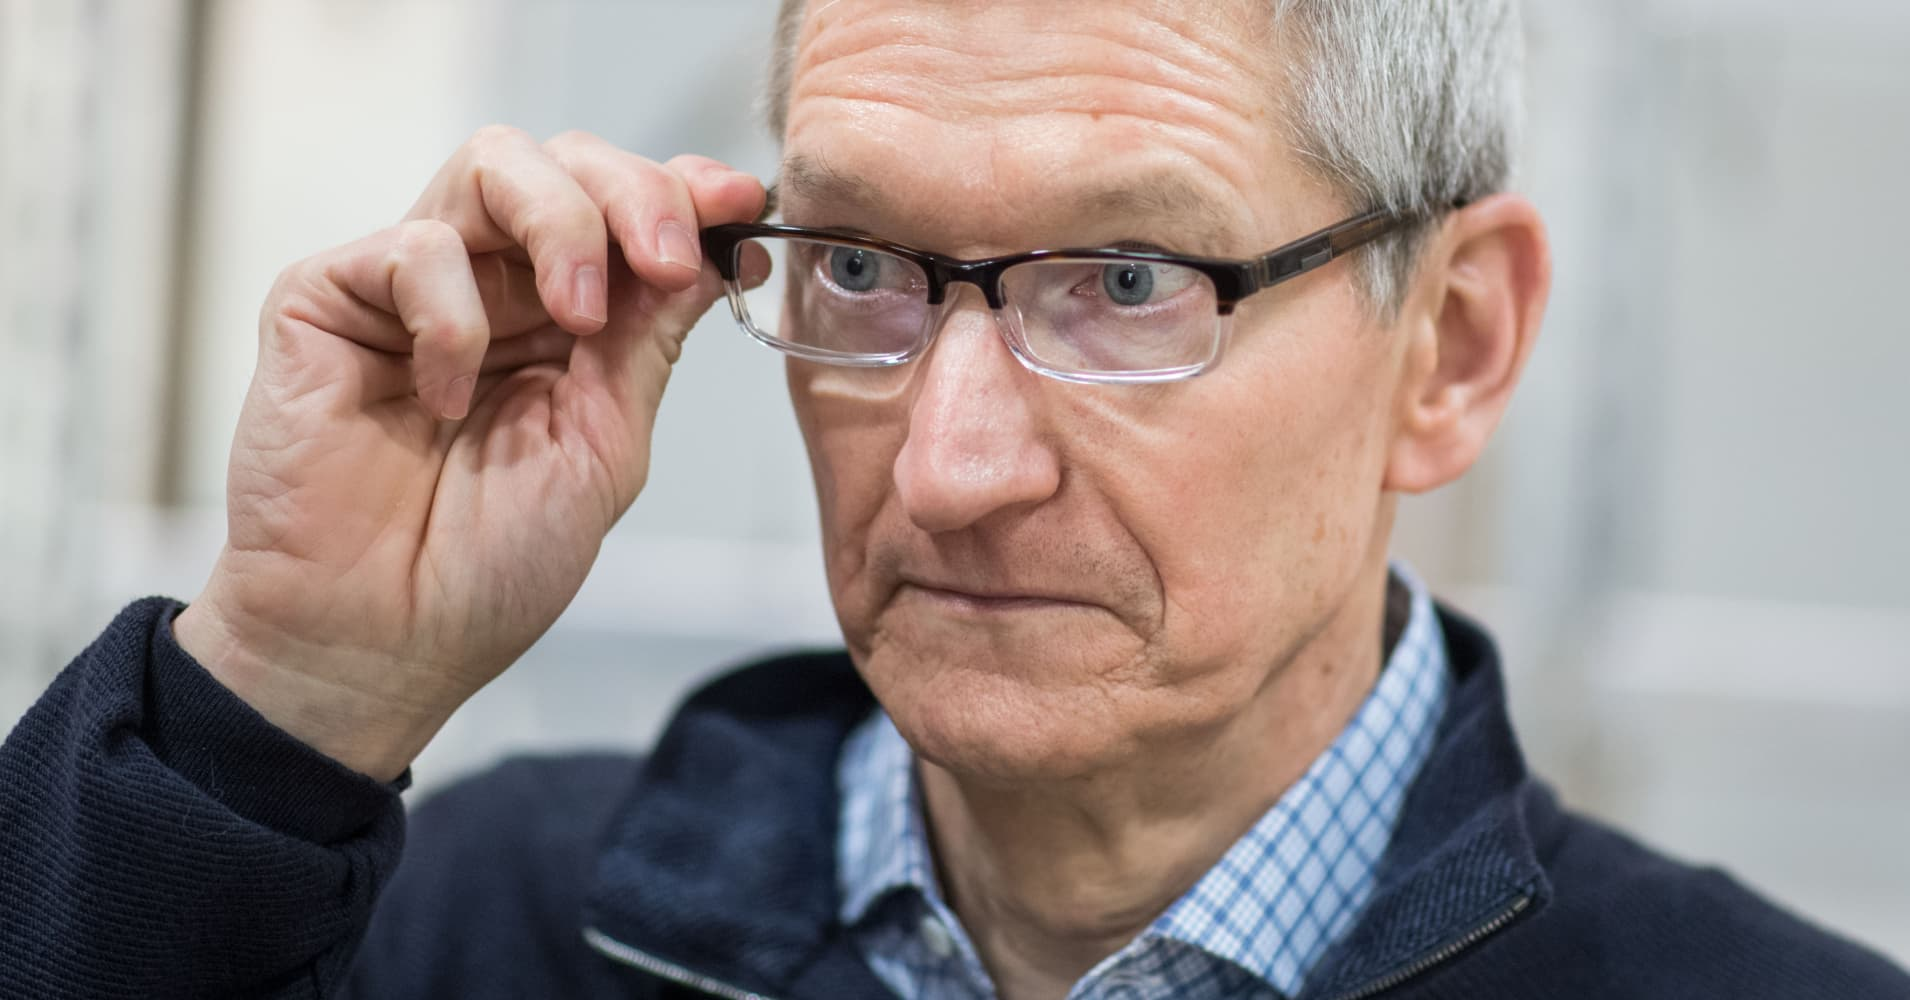 A look at past declines in Apple's stock indicates this rout has further to go